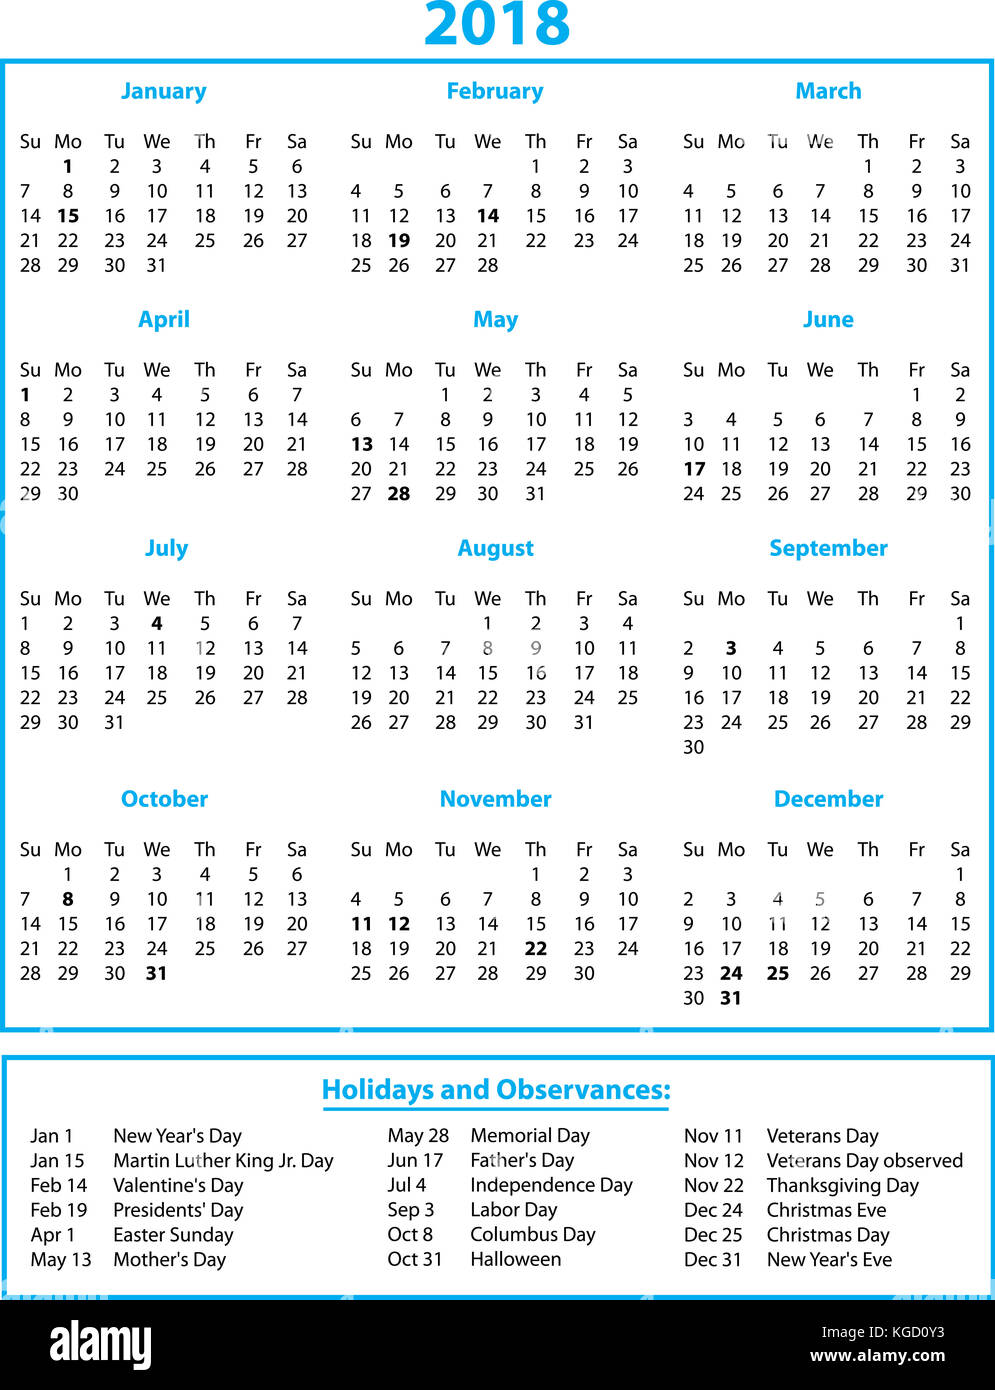 2018 calendar with holidays color